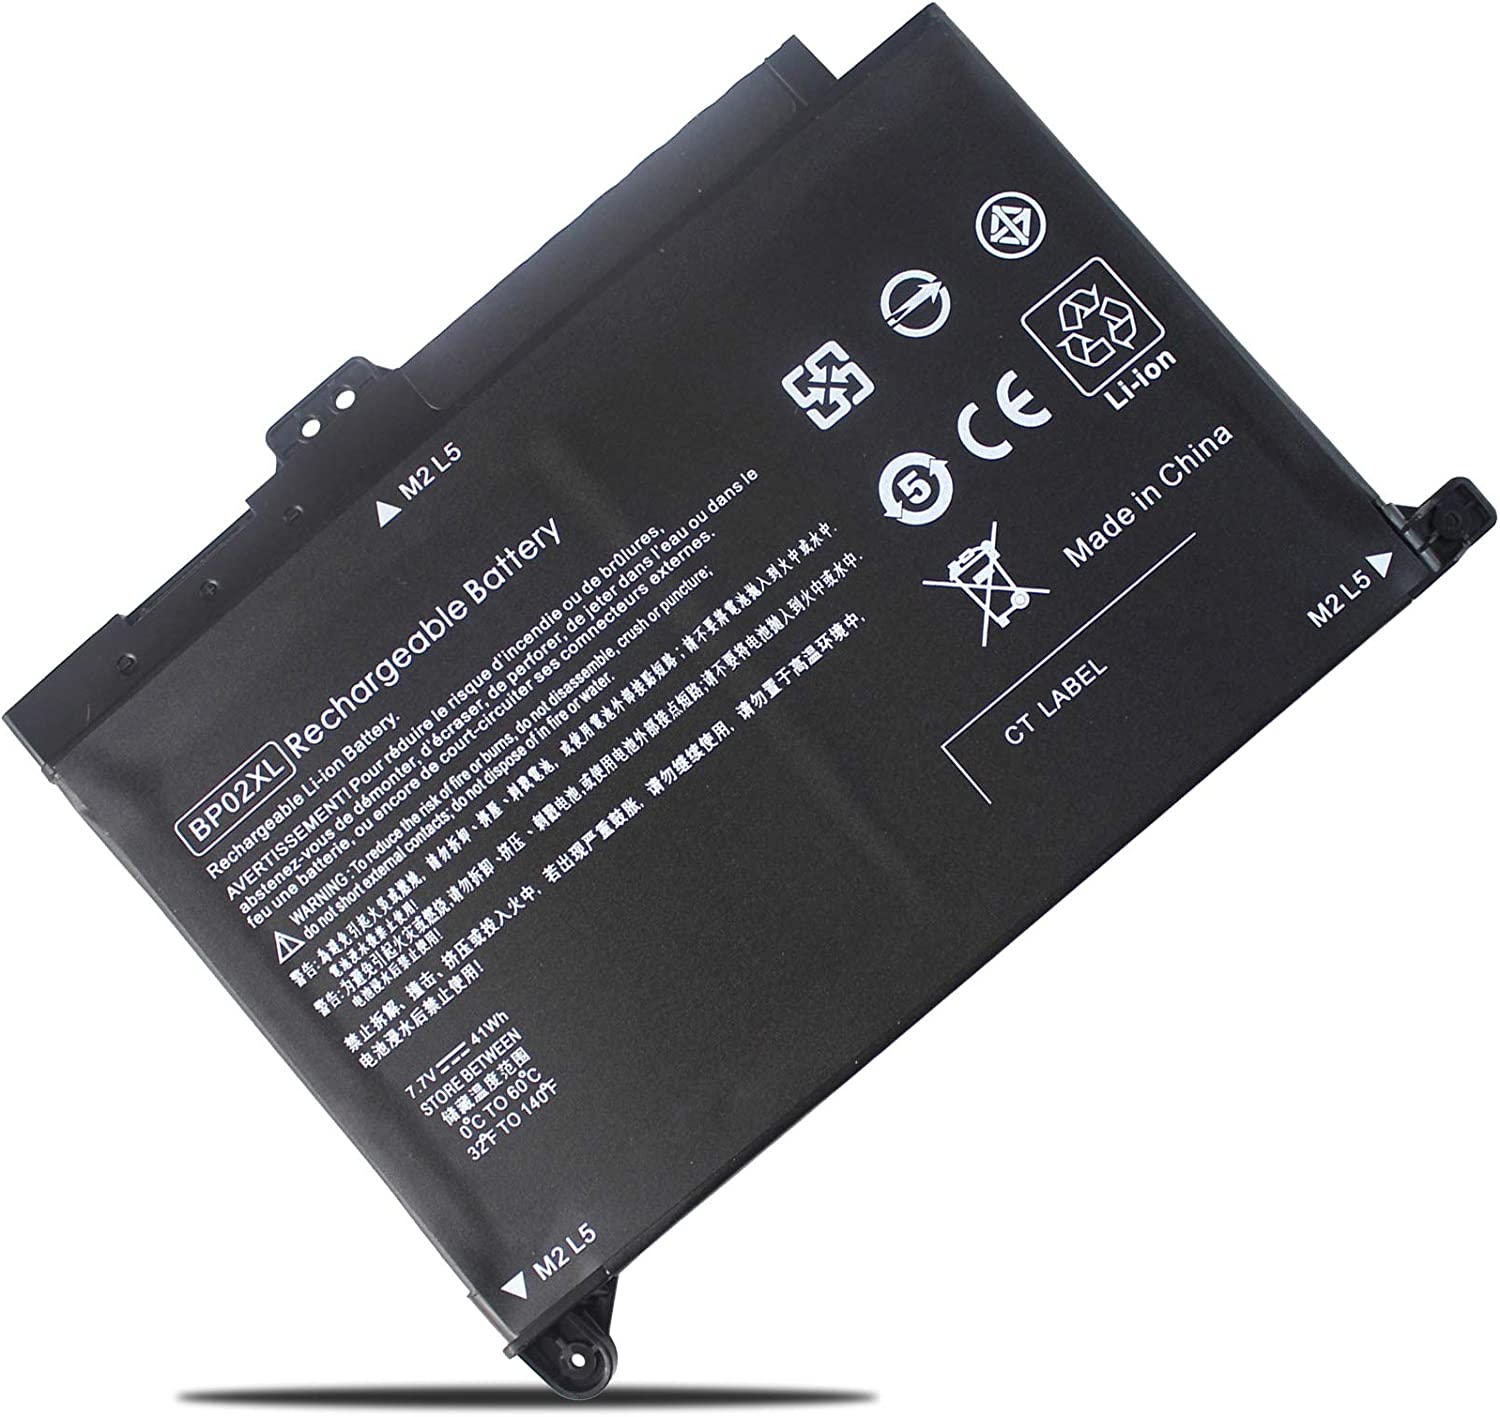 41Wh BP02XL Laptop Battery Replacement for HP 849909-850 849909-855 849569-421 TPN-Q172 HP Pavilion 15-AU063CL 15-AU123CL 15-AU010WM 15-AU018WM 15-AU020WM 15-AW053NR 15-AU062NR